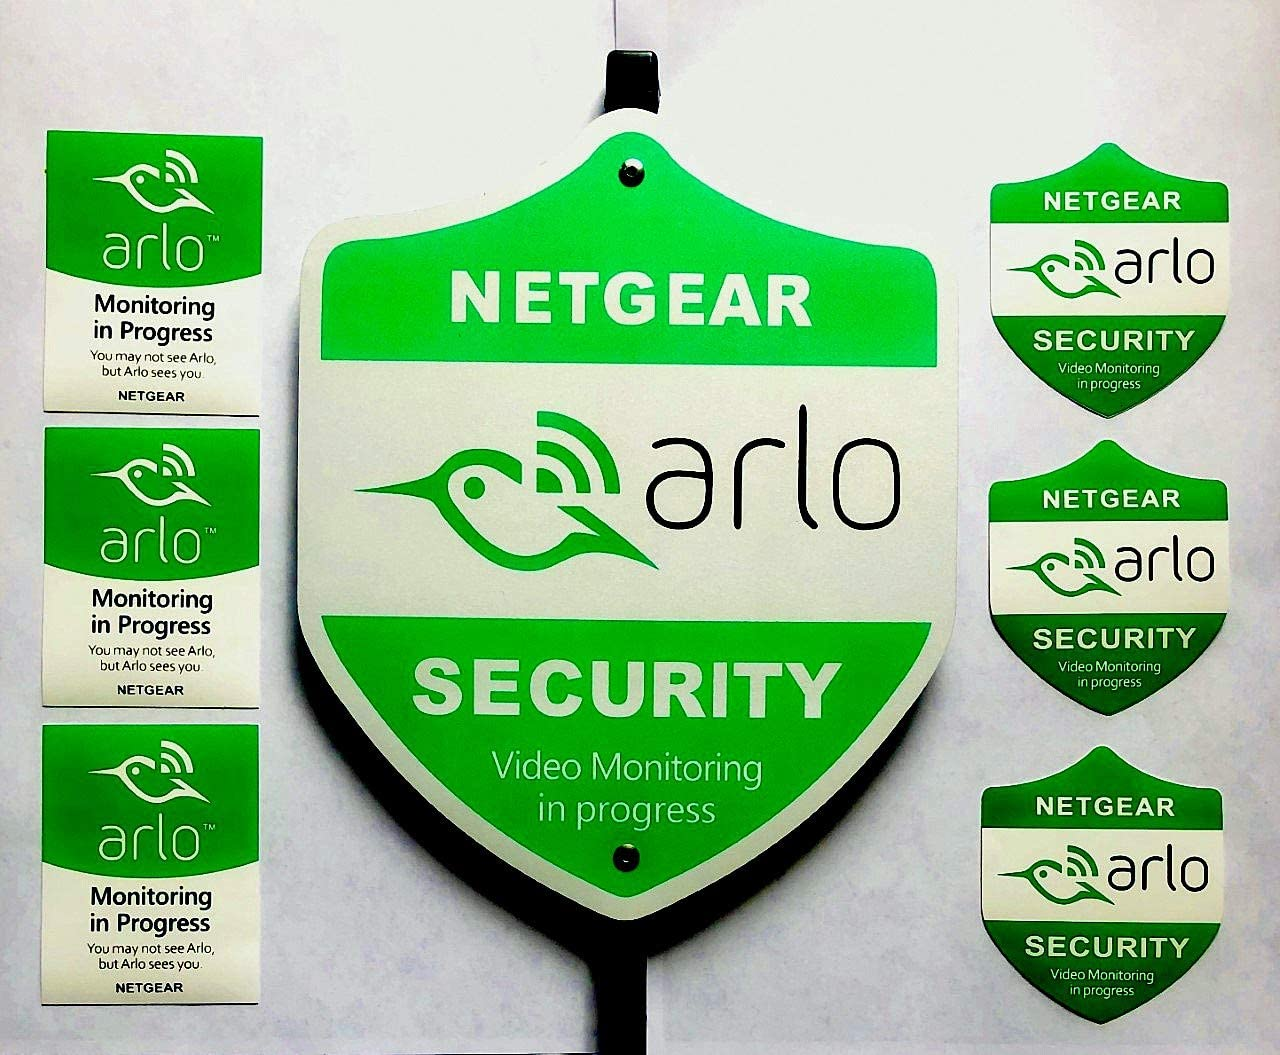 Arlo Yard Security Sign, 8 yr Weatherproof Reflective Aluminum Construction, 6 Window/Door Stickers by 3M Included